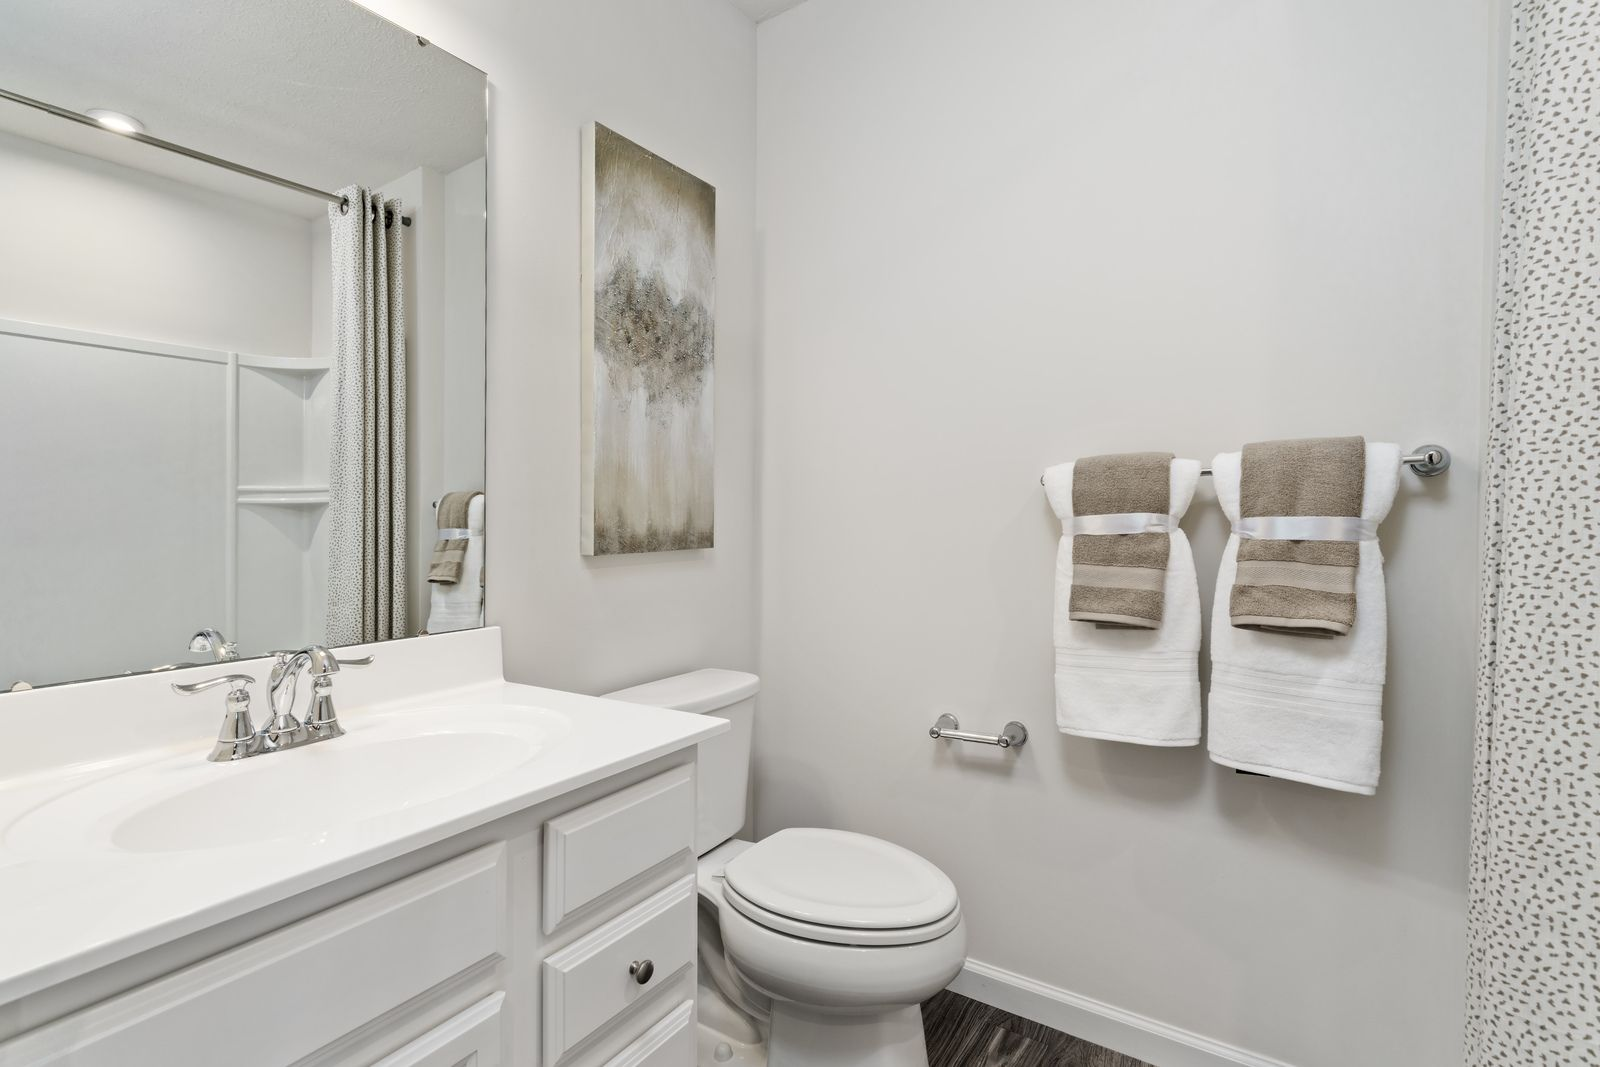 Bathroom featured in the Rosecliff Lux w/ 2' Ext, Rec Rm & Bath By Ryan Homes